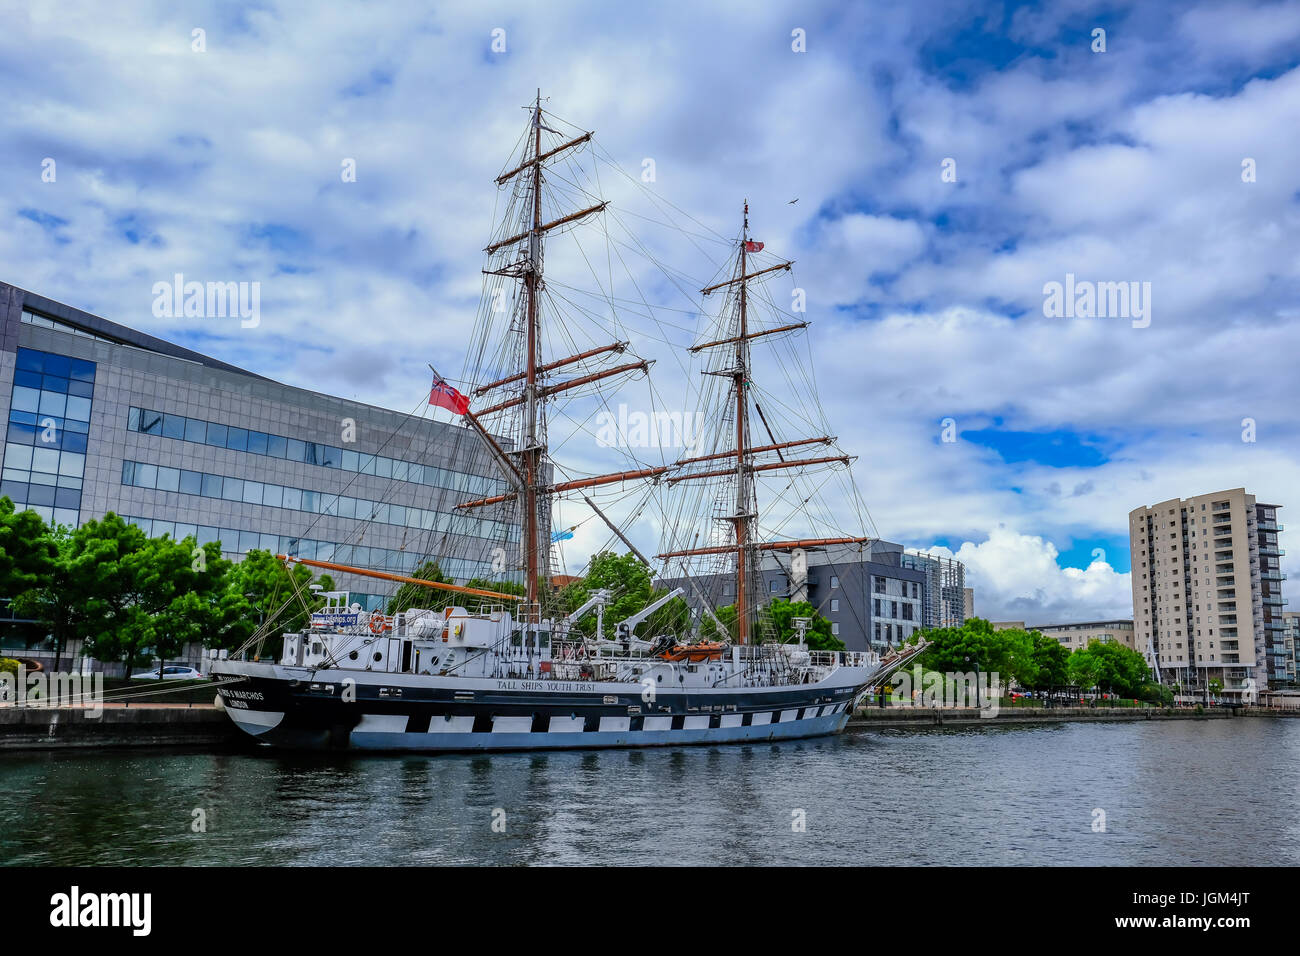 Cardiff Bay, Wales - May 21, 2017: Stavros S Niarchos, Tall Ship Training ship moored near the barrage at Cardiff - Stock Image